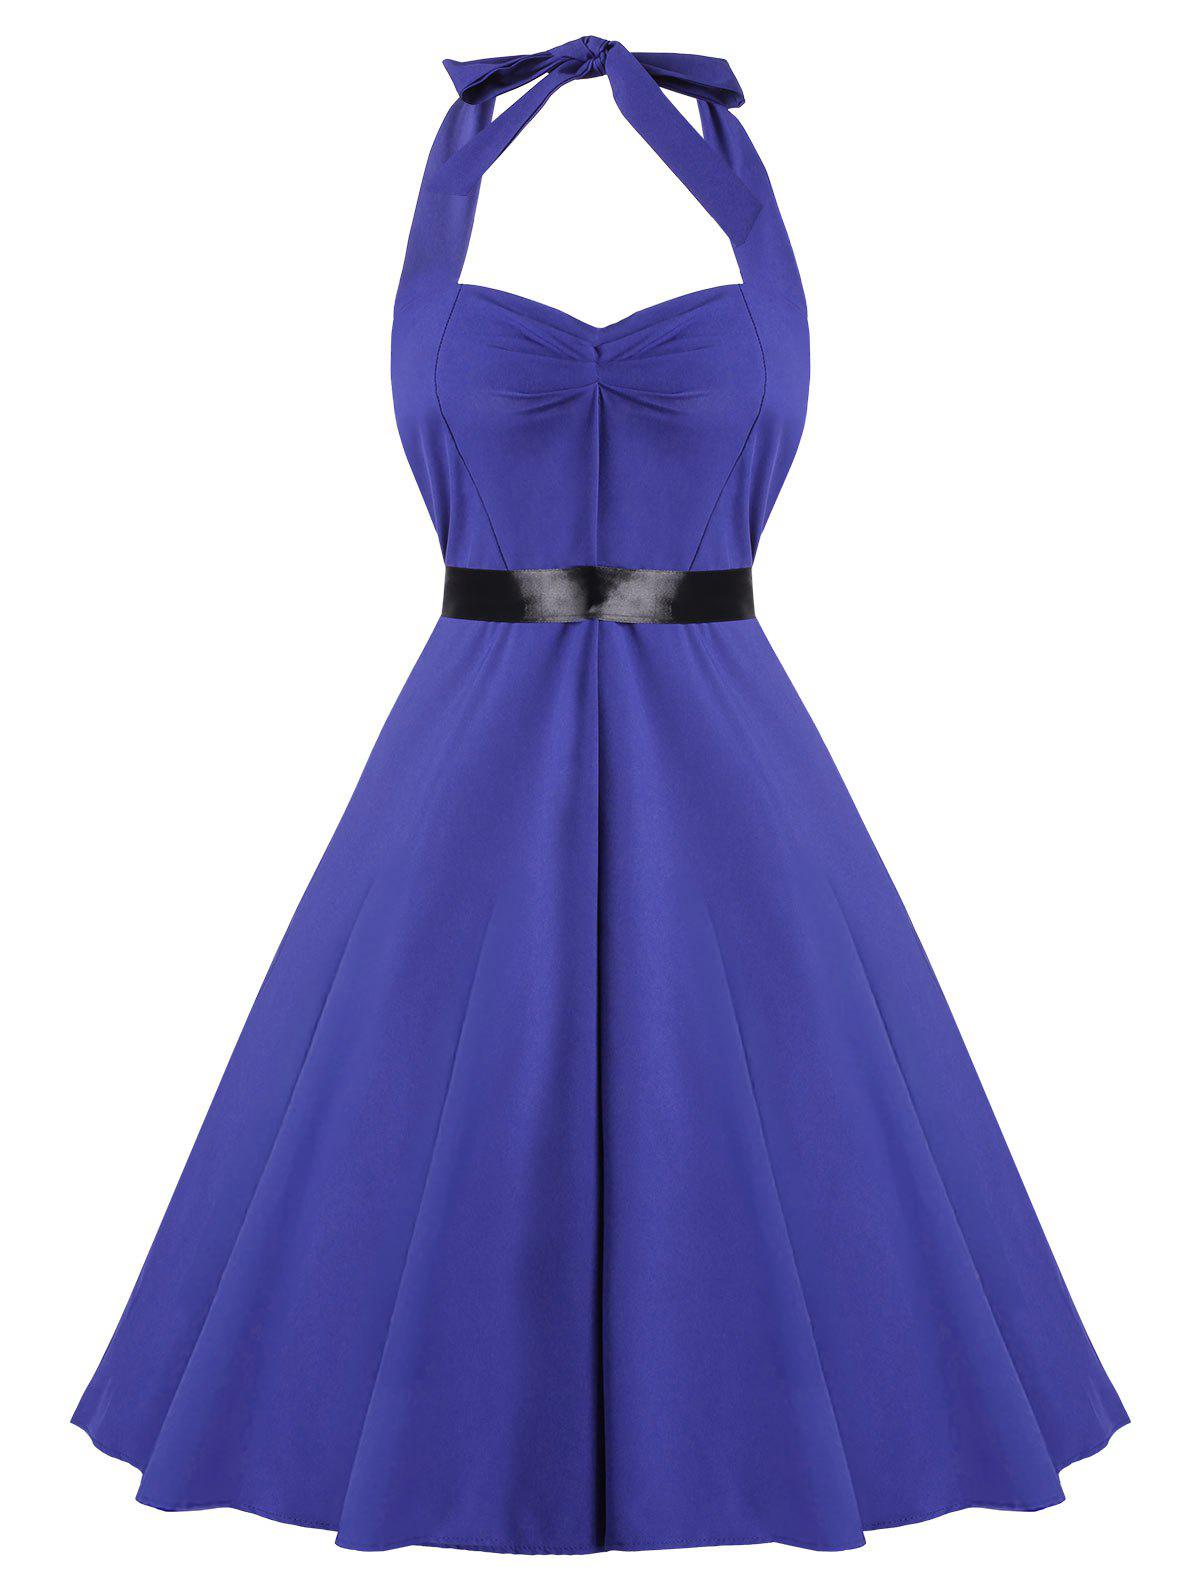 Fit and Flare Halter Vintage Dress - BLUE XL